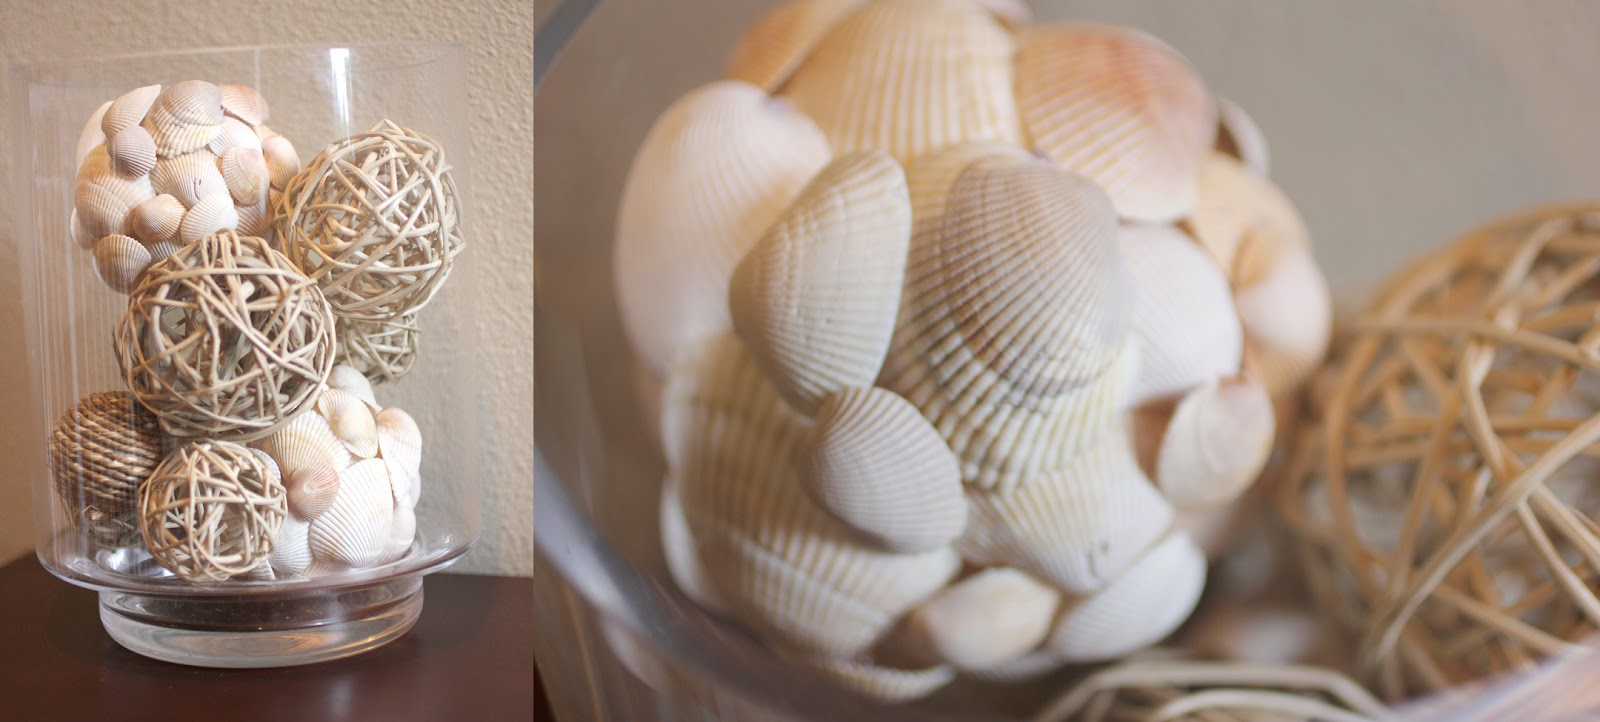 Repeat crafter me seashell crafts for Seashell crafts for adults